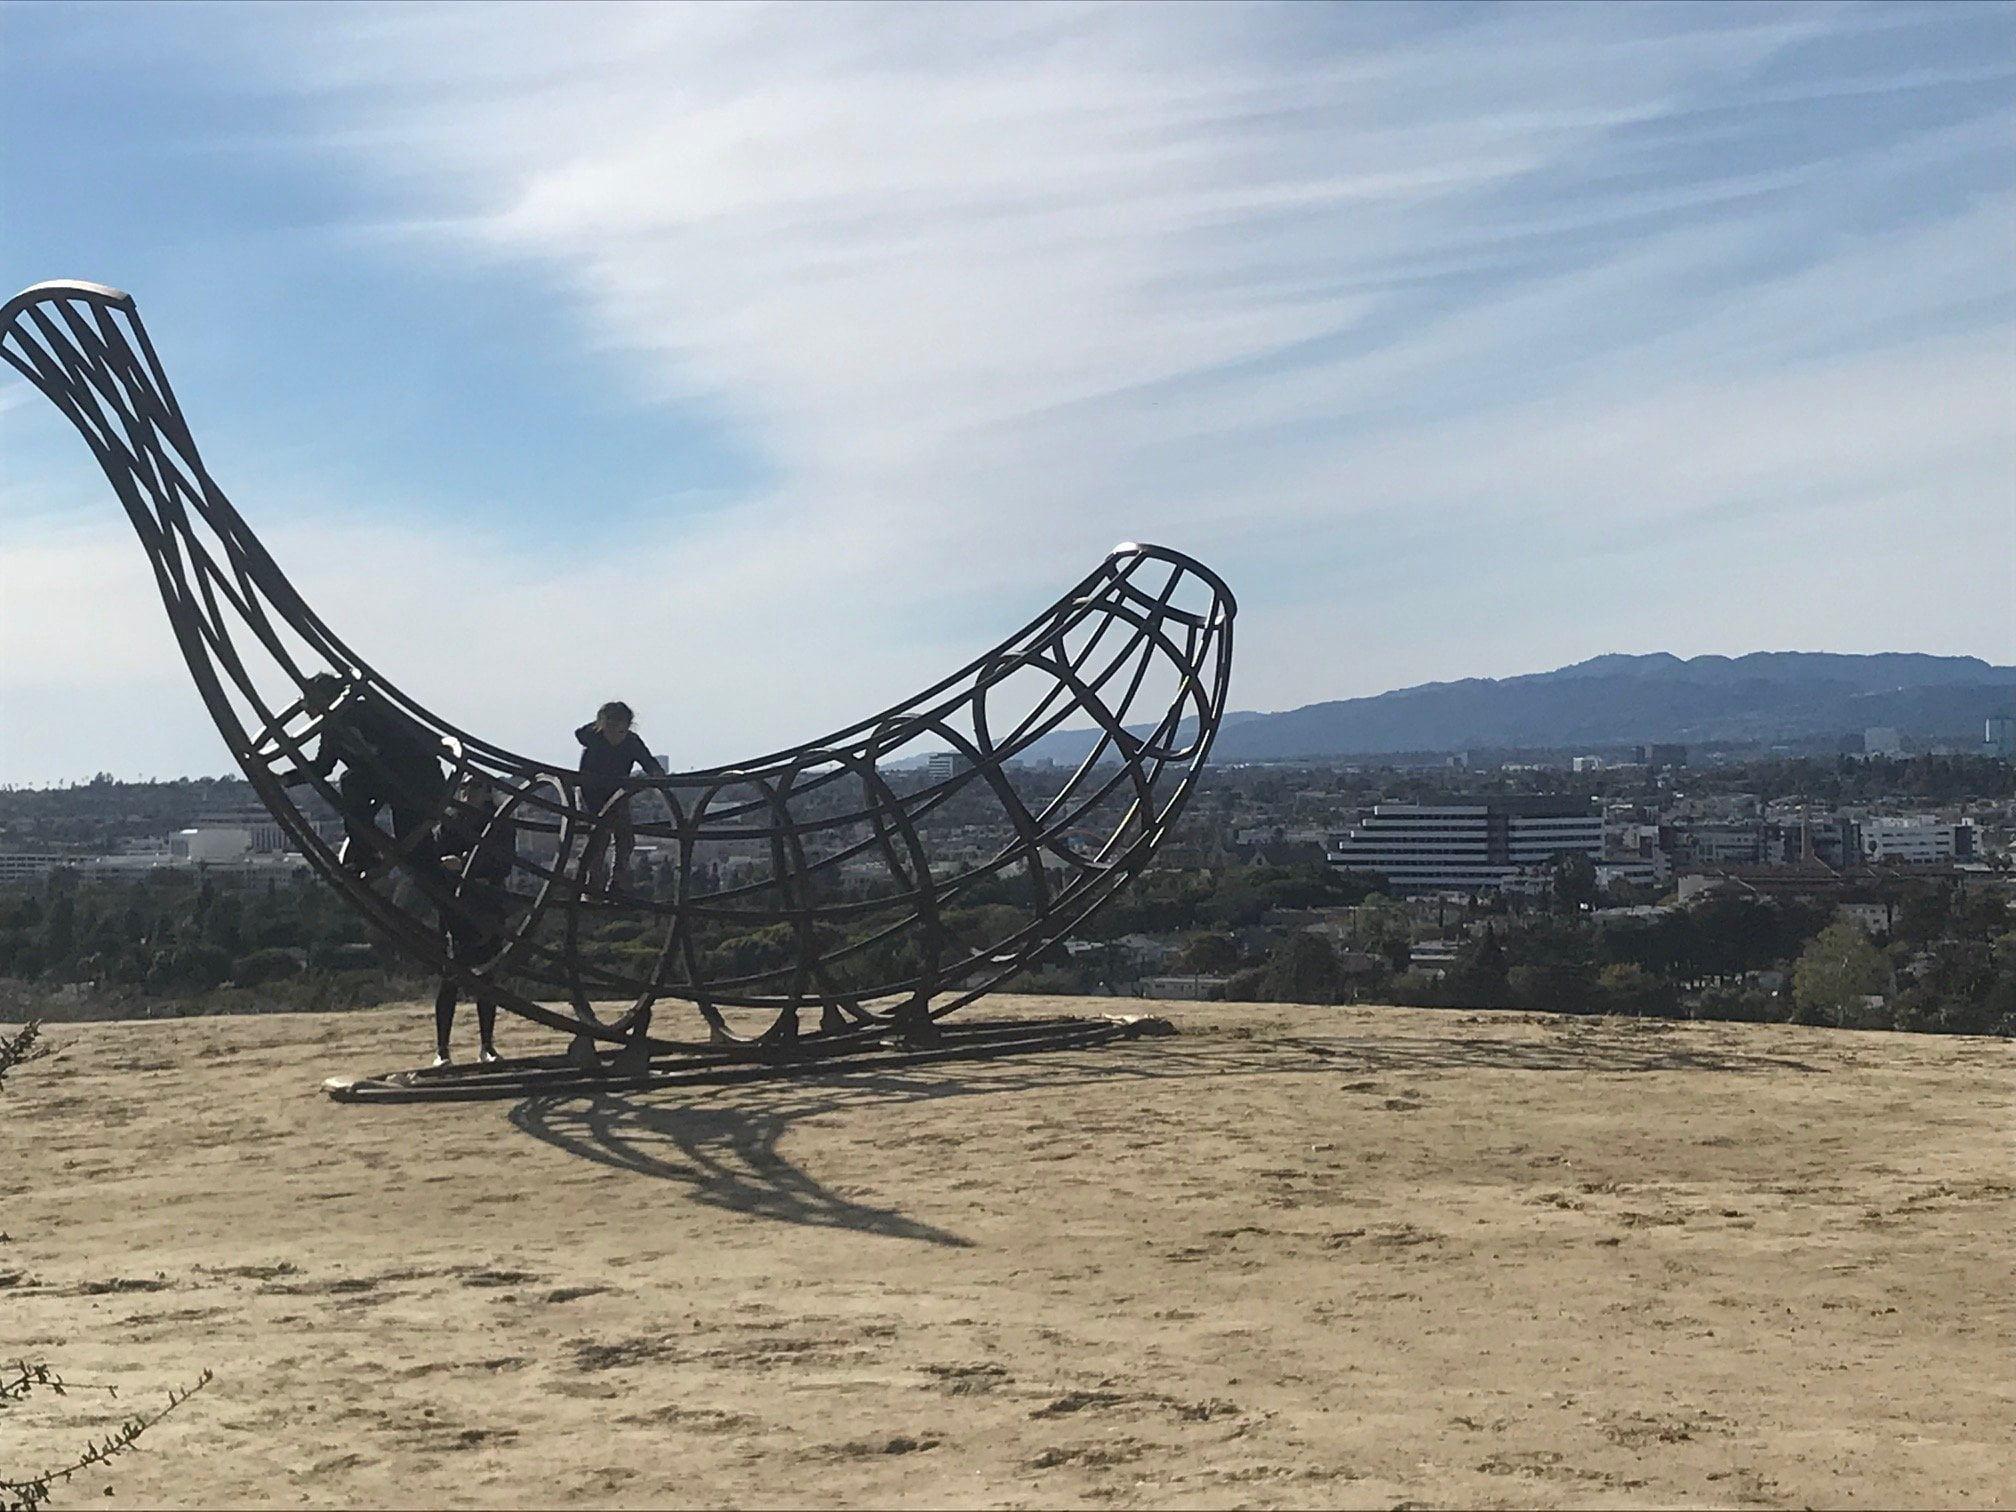 baldwin hills scenic overlook banana sculpture